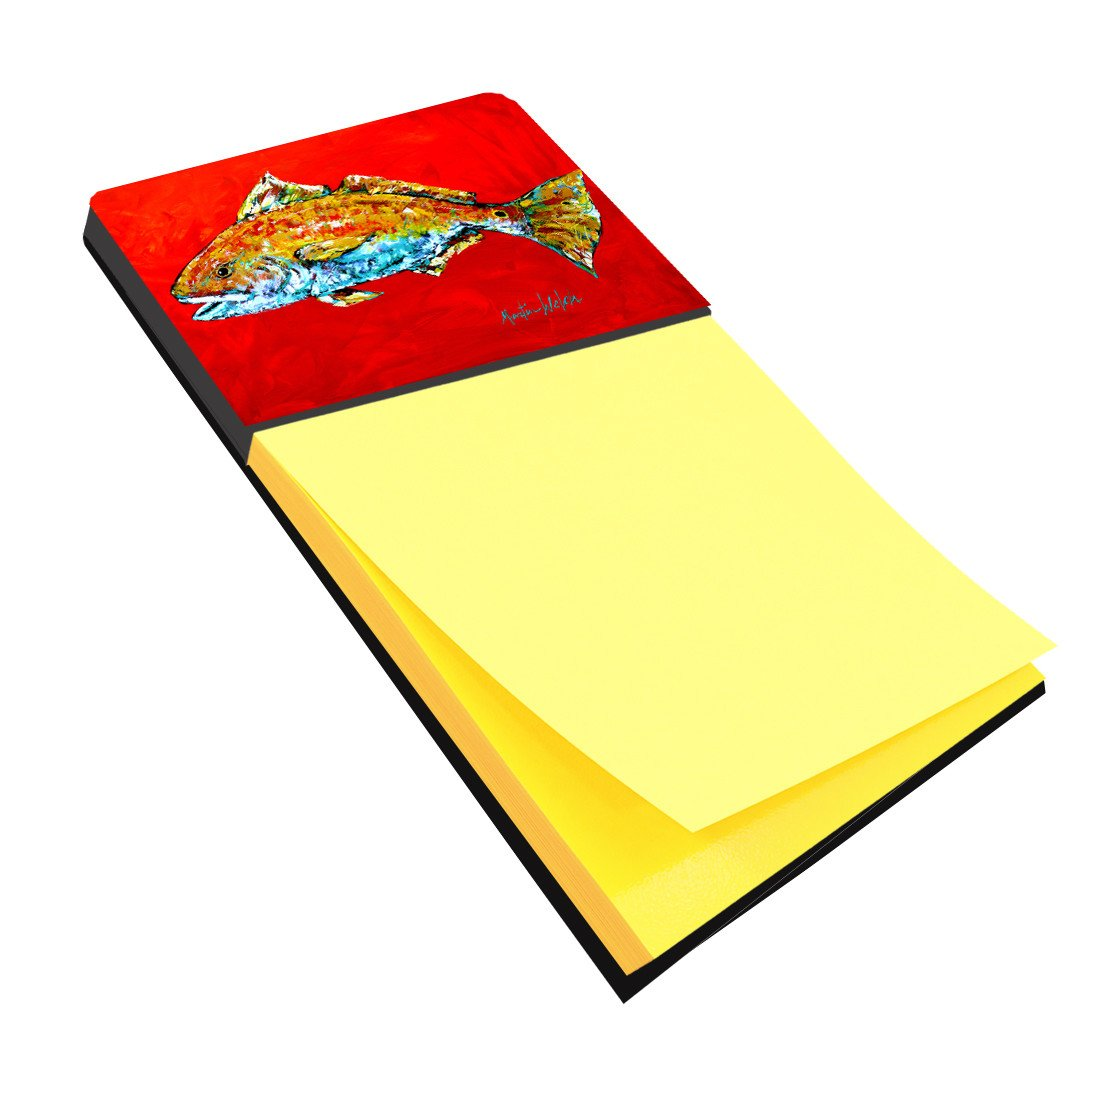 Fish - Red Fish Red Head Refiillable Sticky Note Holder or Postit Note Dispenser MW1111SN by Caroline's Treasures